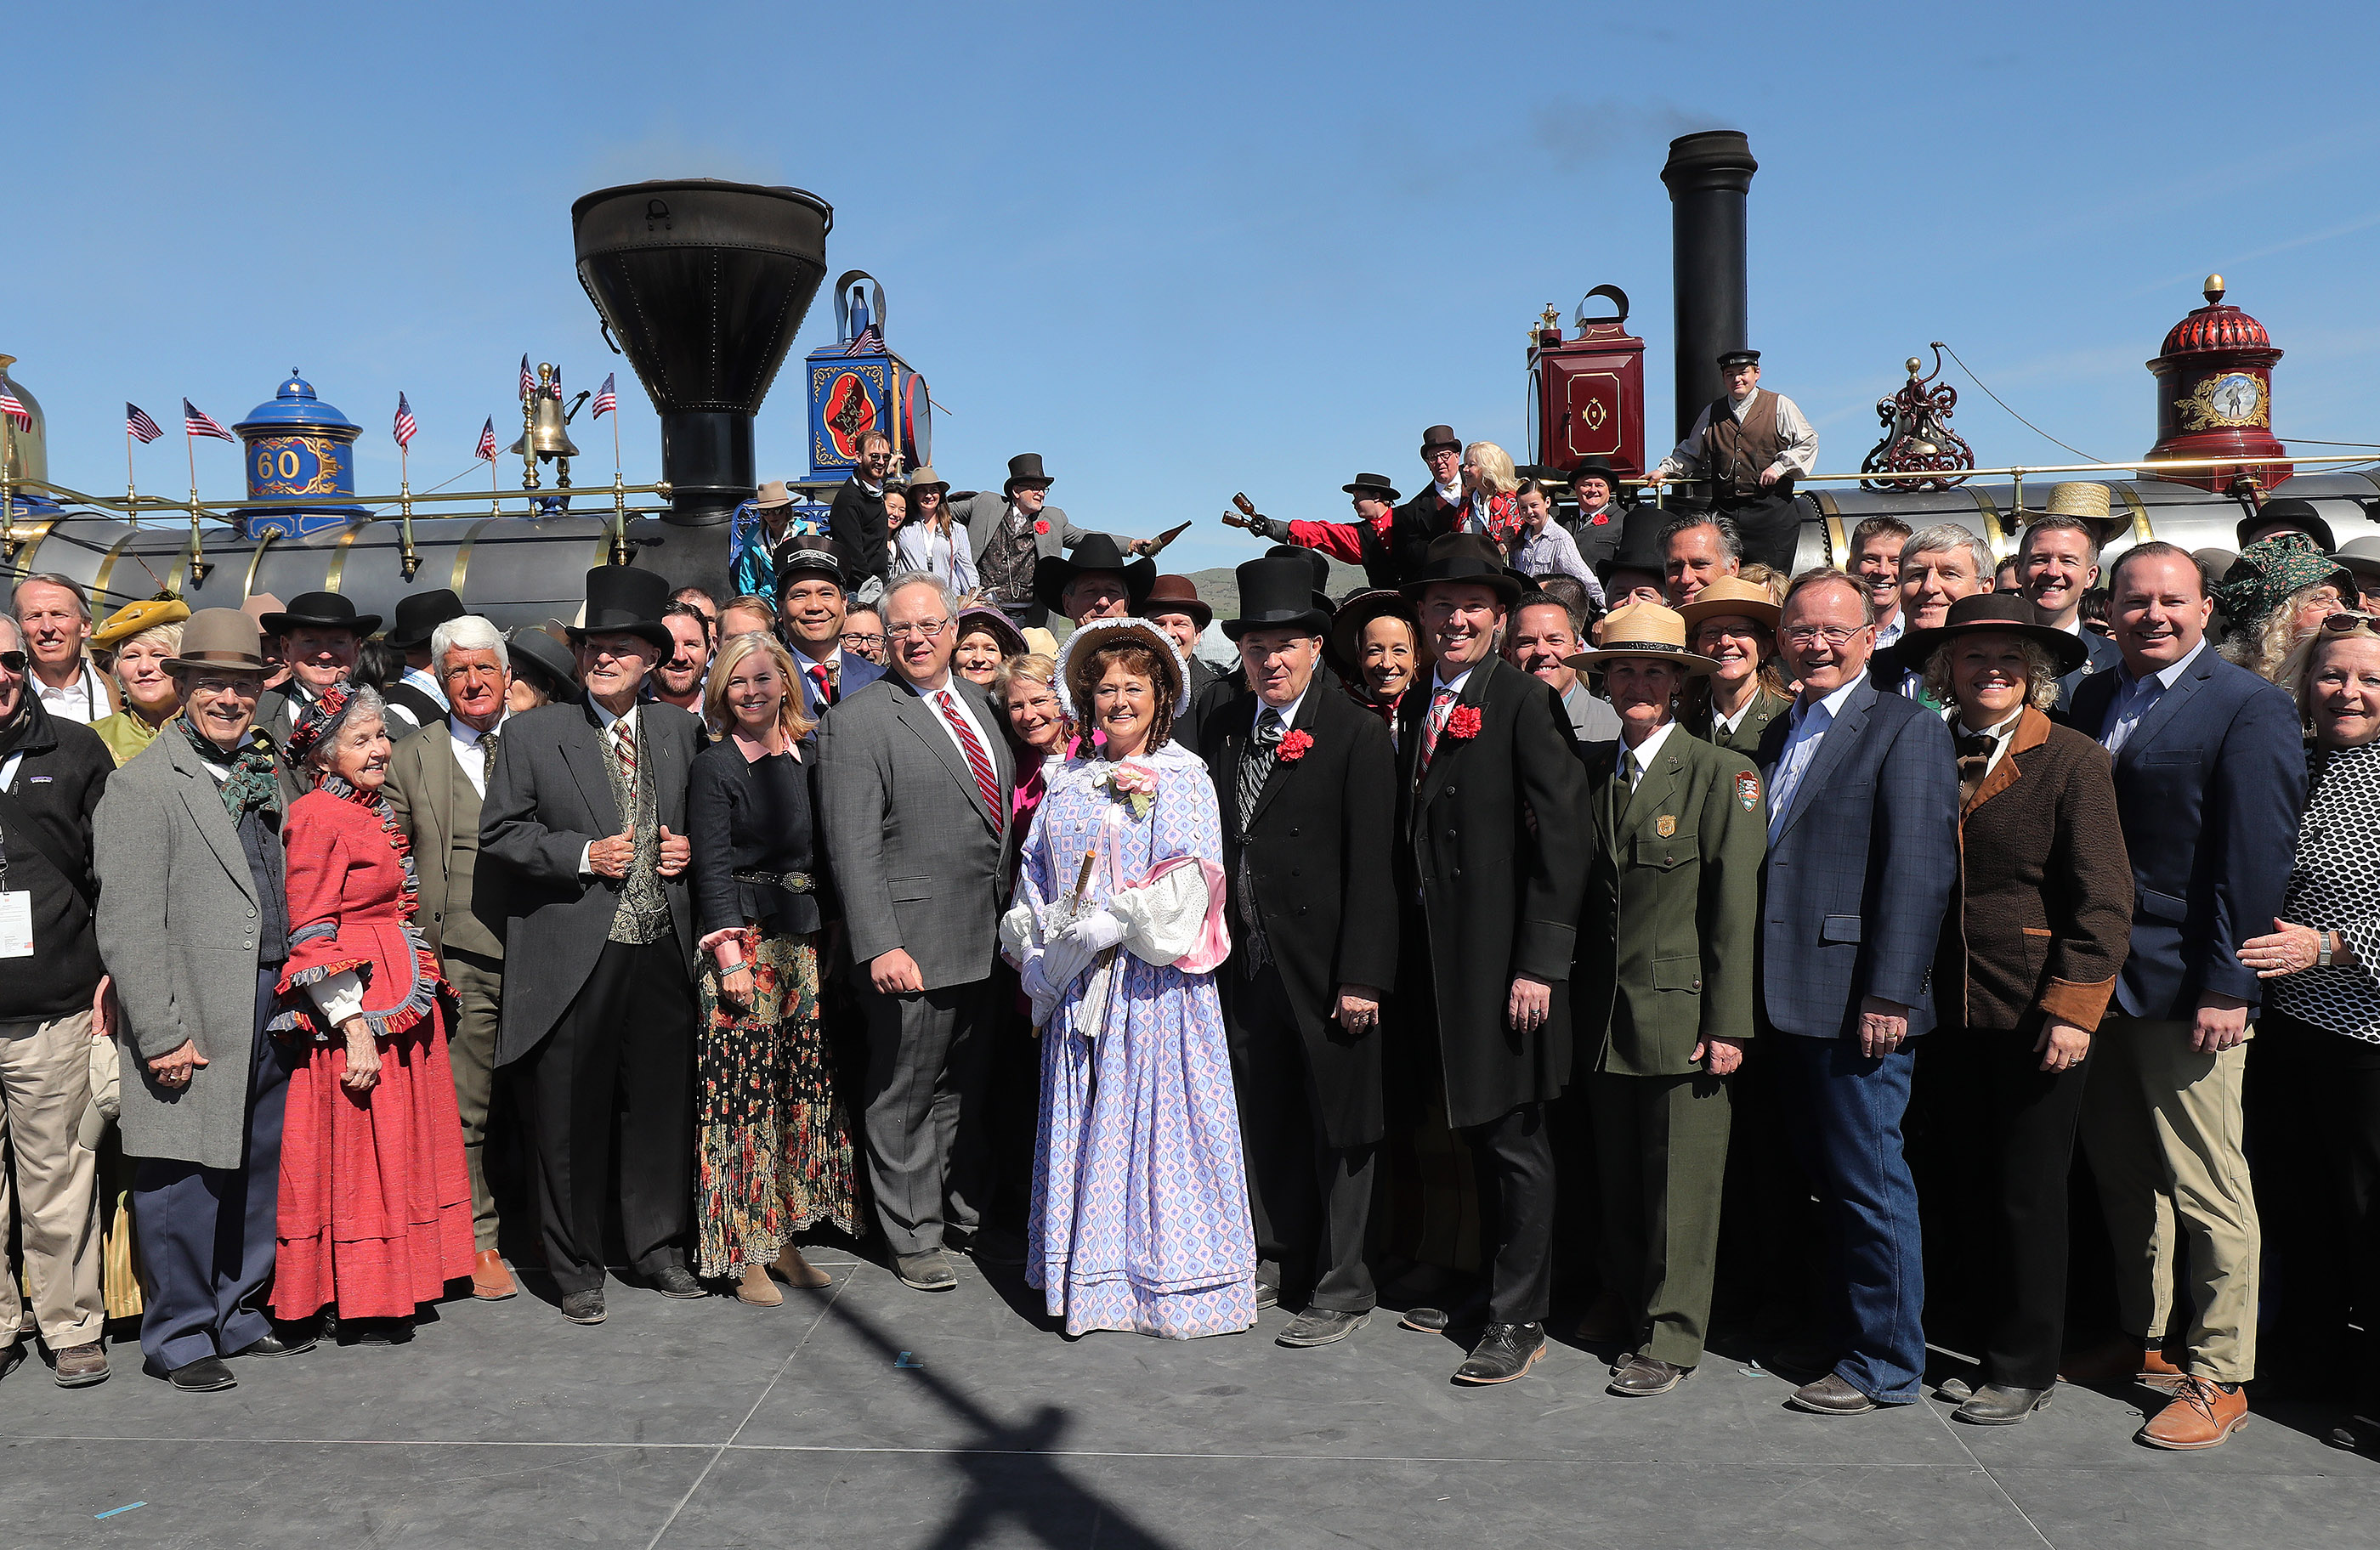 The historic photo from 1869 is recreated during the 150th anniversary celebration at the Golden Spike National Historical Park in Promontory Summit on Friday, May 10, 2019.